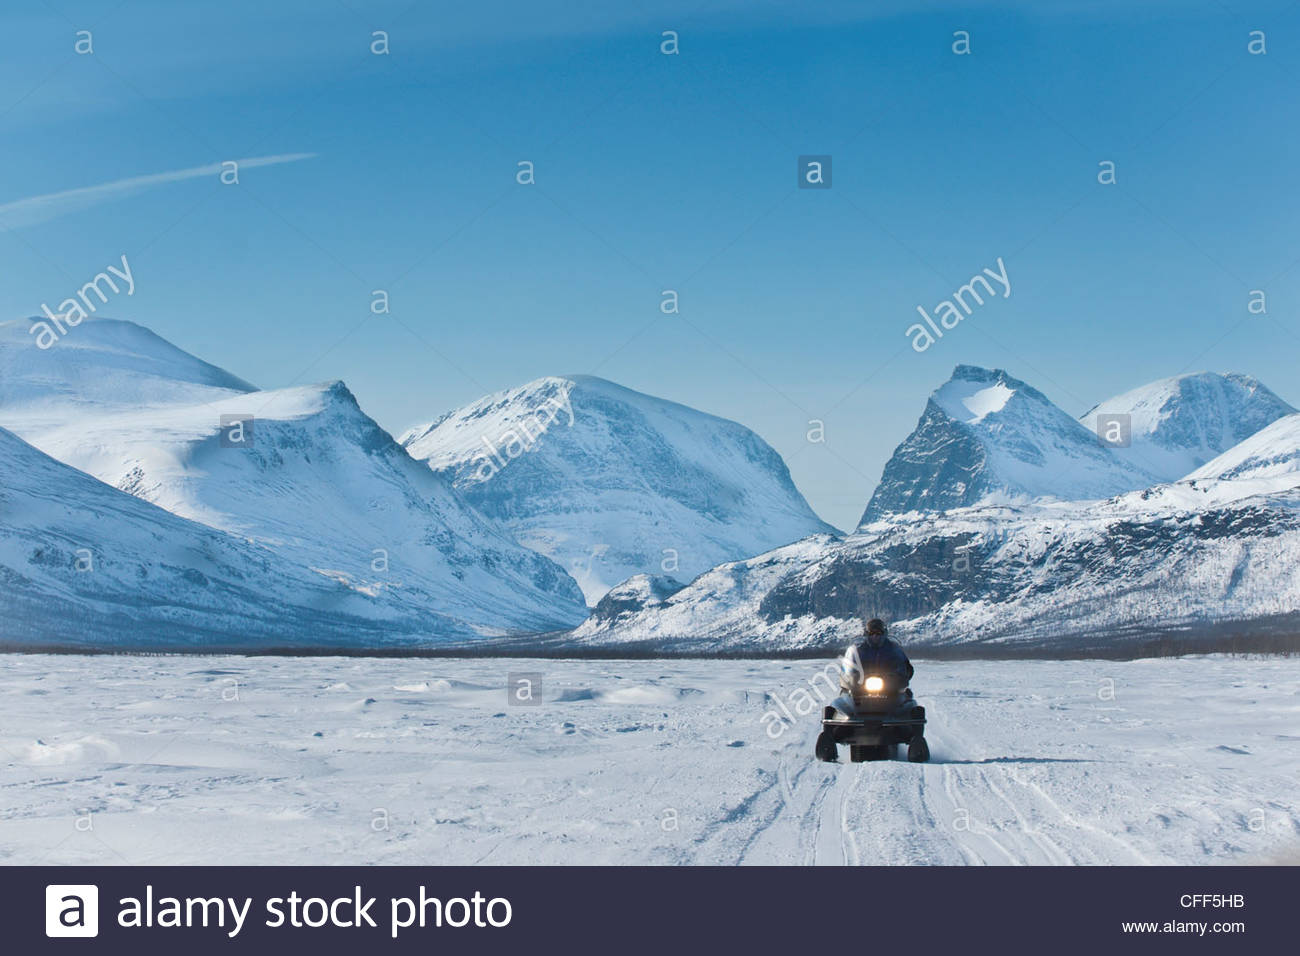 Snowmobiling in Kalix river valley with snow covered mountains, Kiruna region, arctic Sweden, Scandinavia, Europe - Stock Image